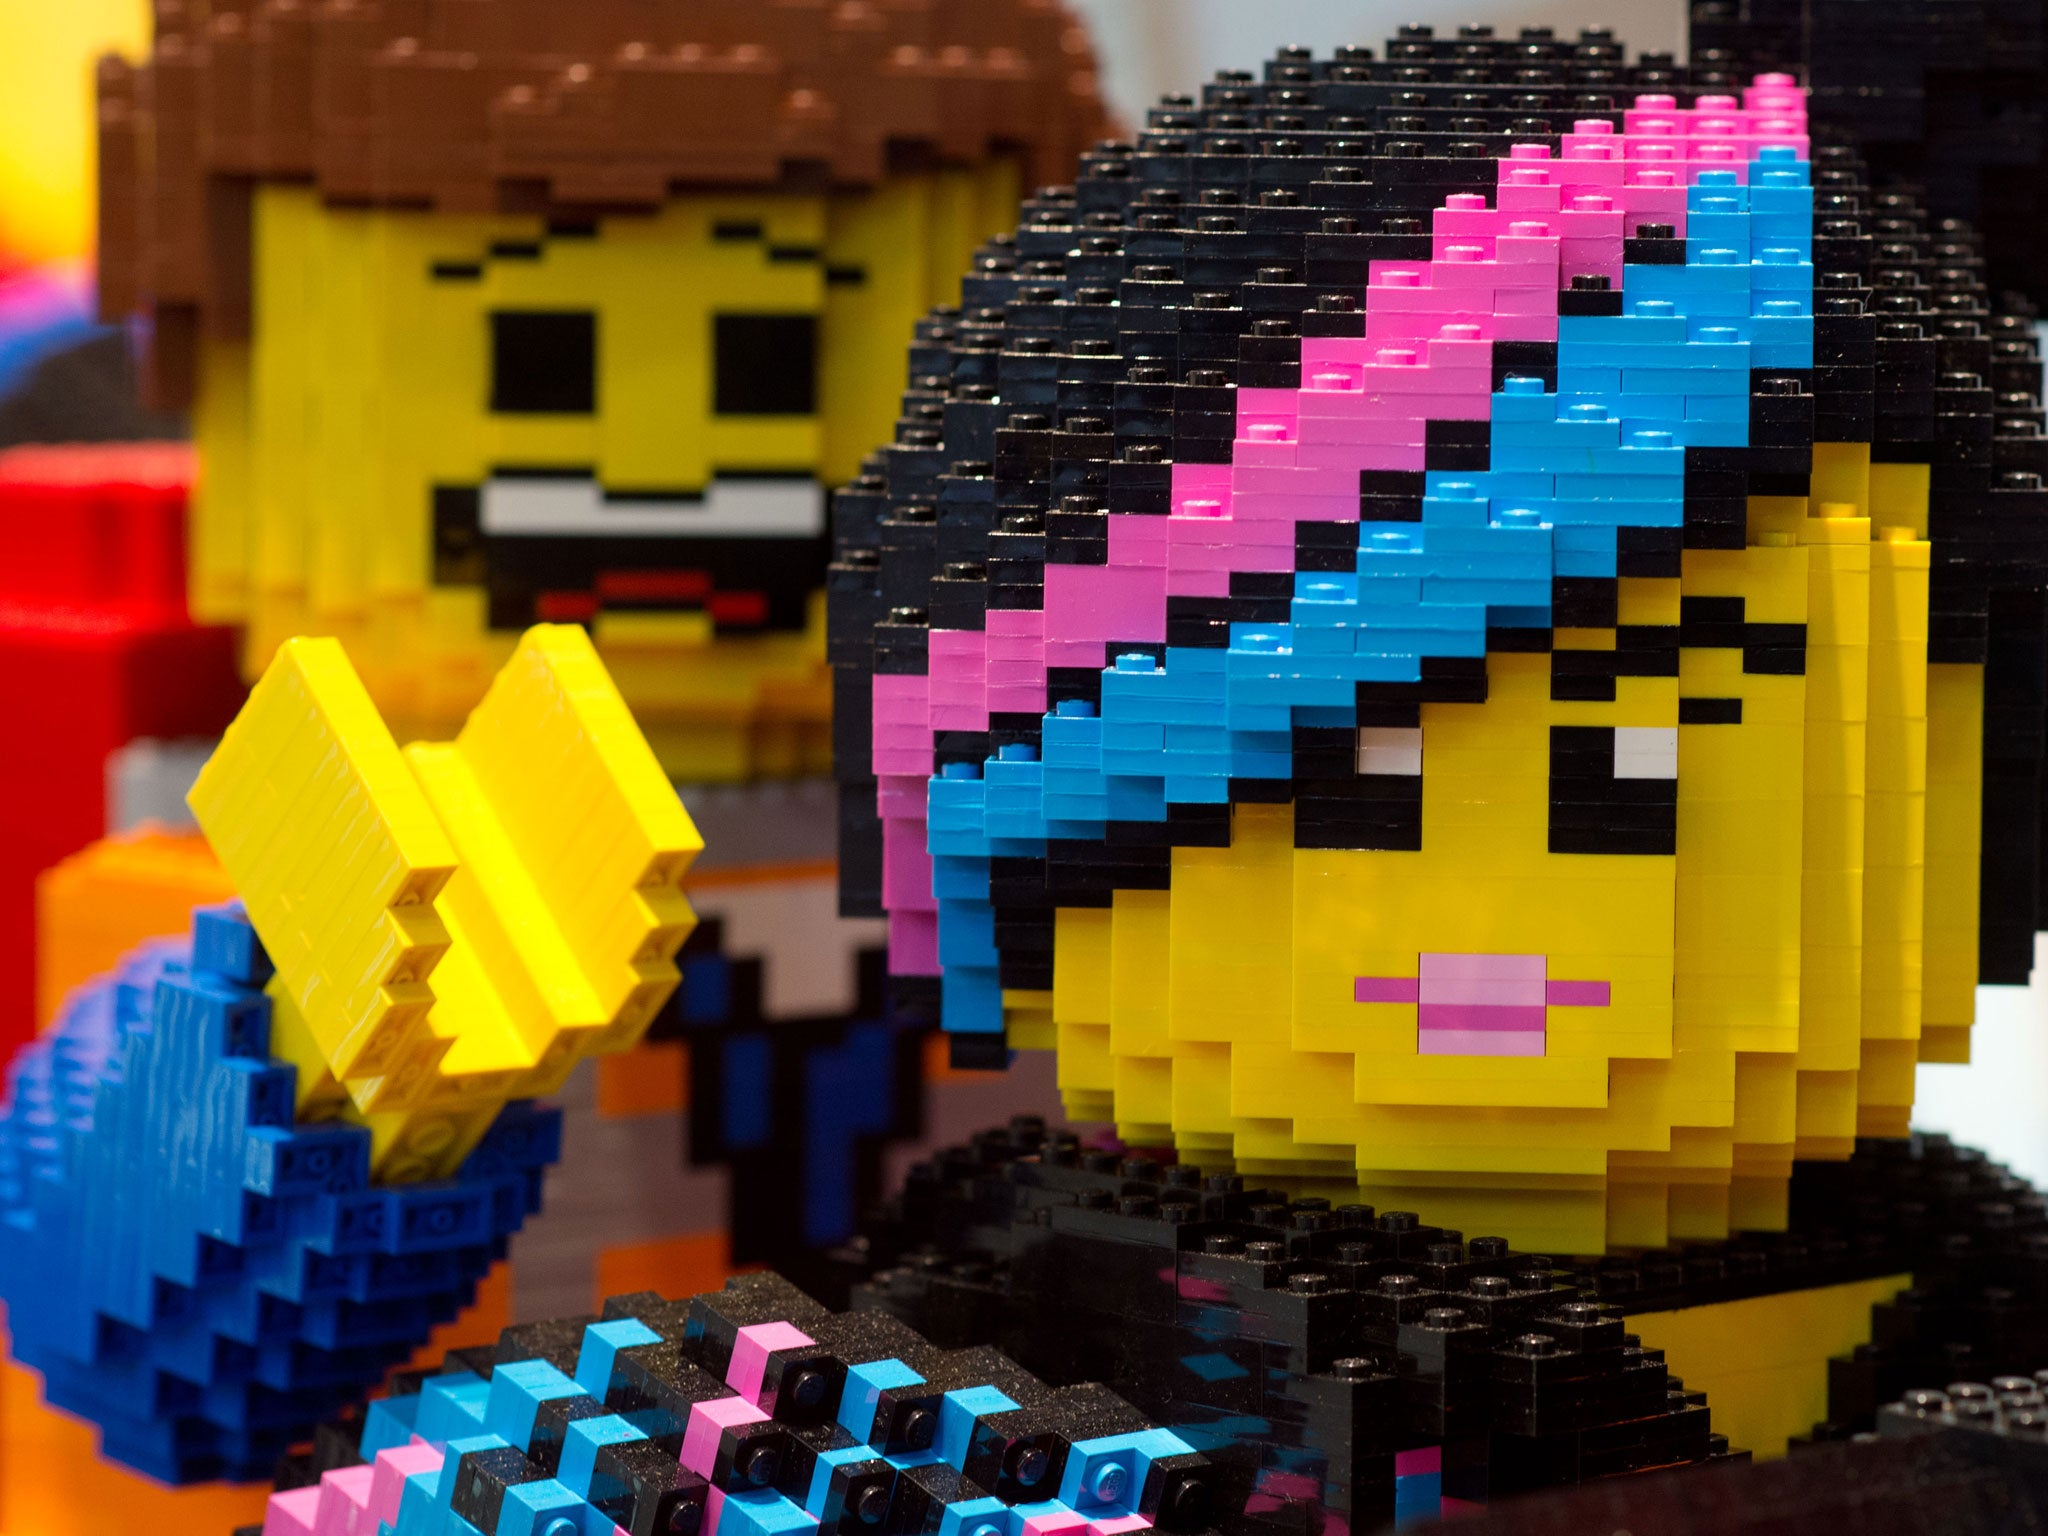 Lego told off by 7-year-old girl for promoting gender